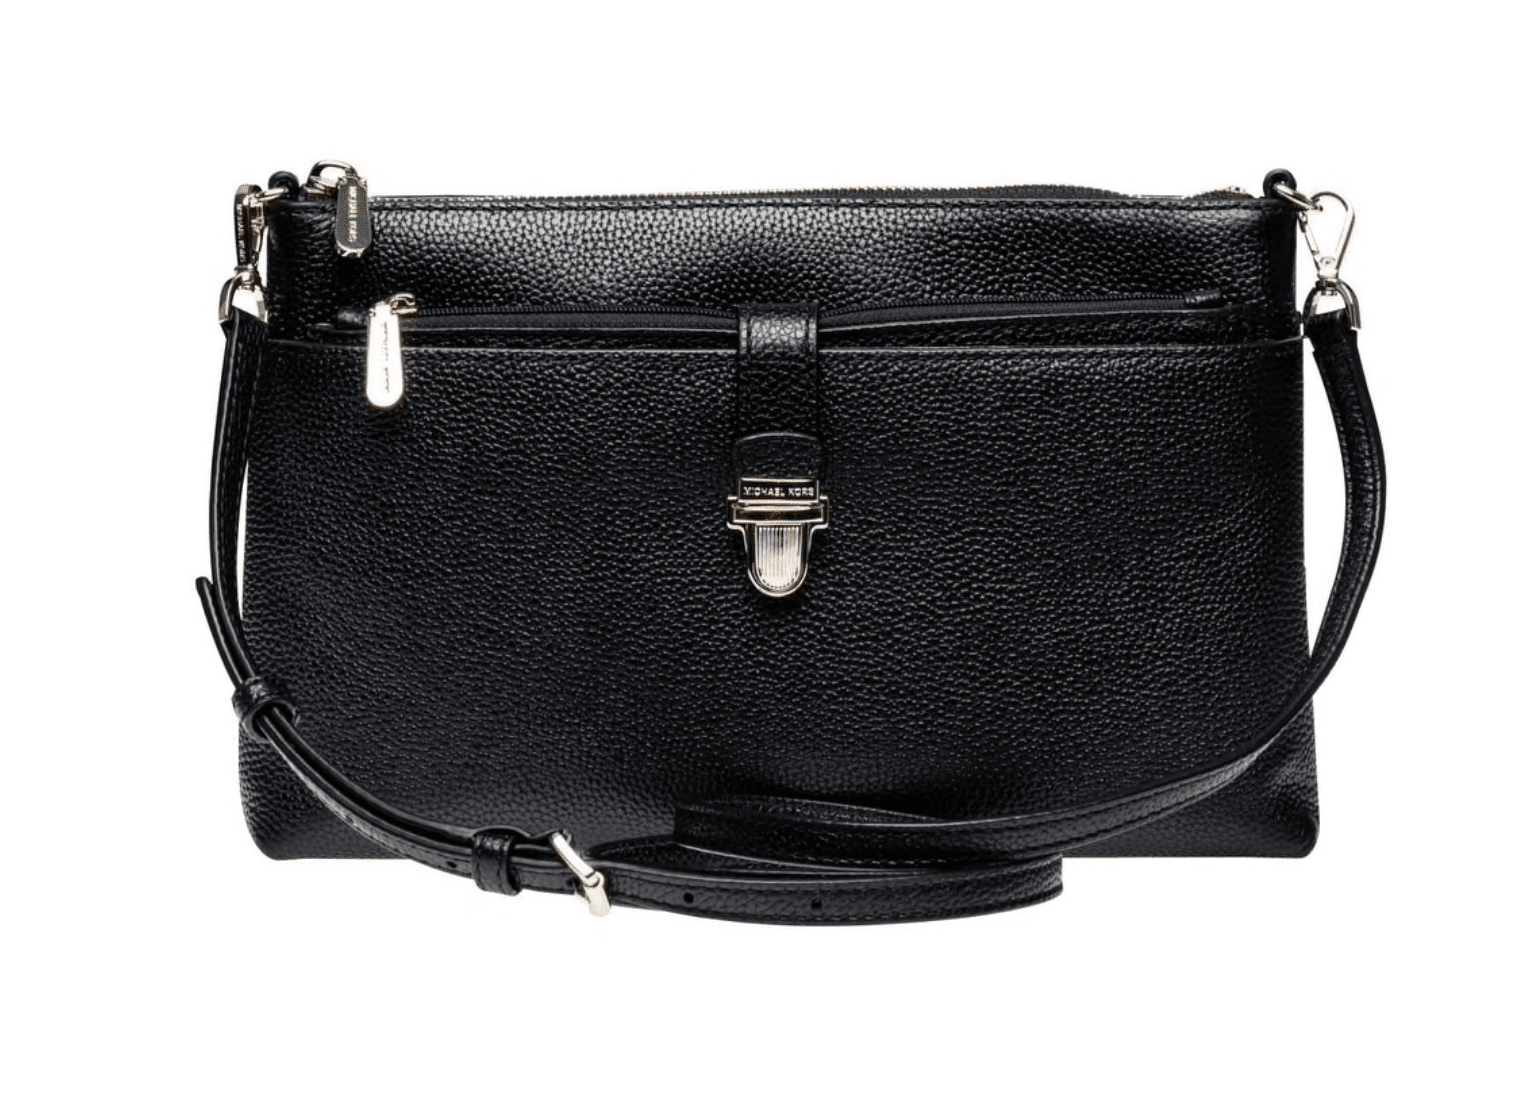 43aa46dd5885 This Michael Kors black crossbody handbag is serious enough for a business  trip and fun enough for a night out.